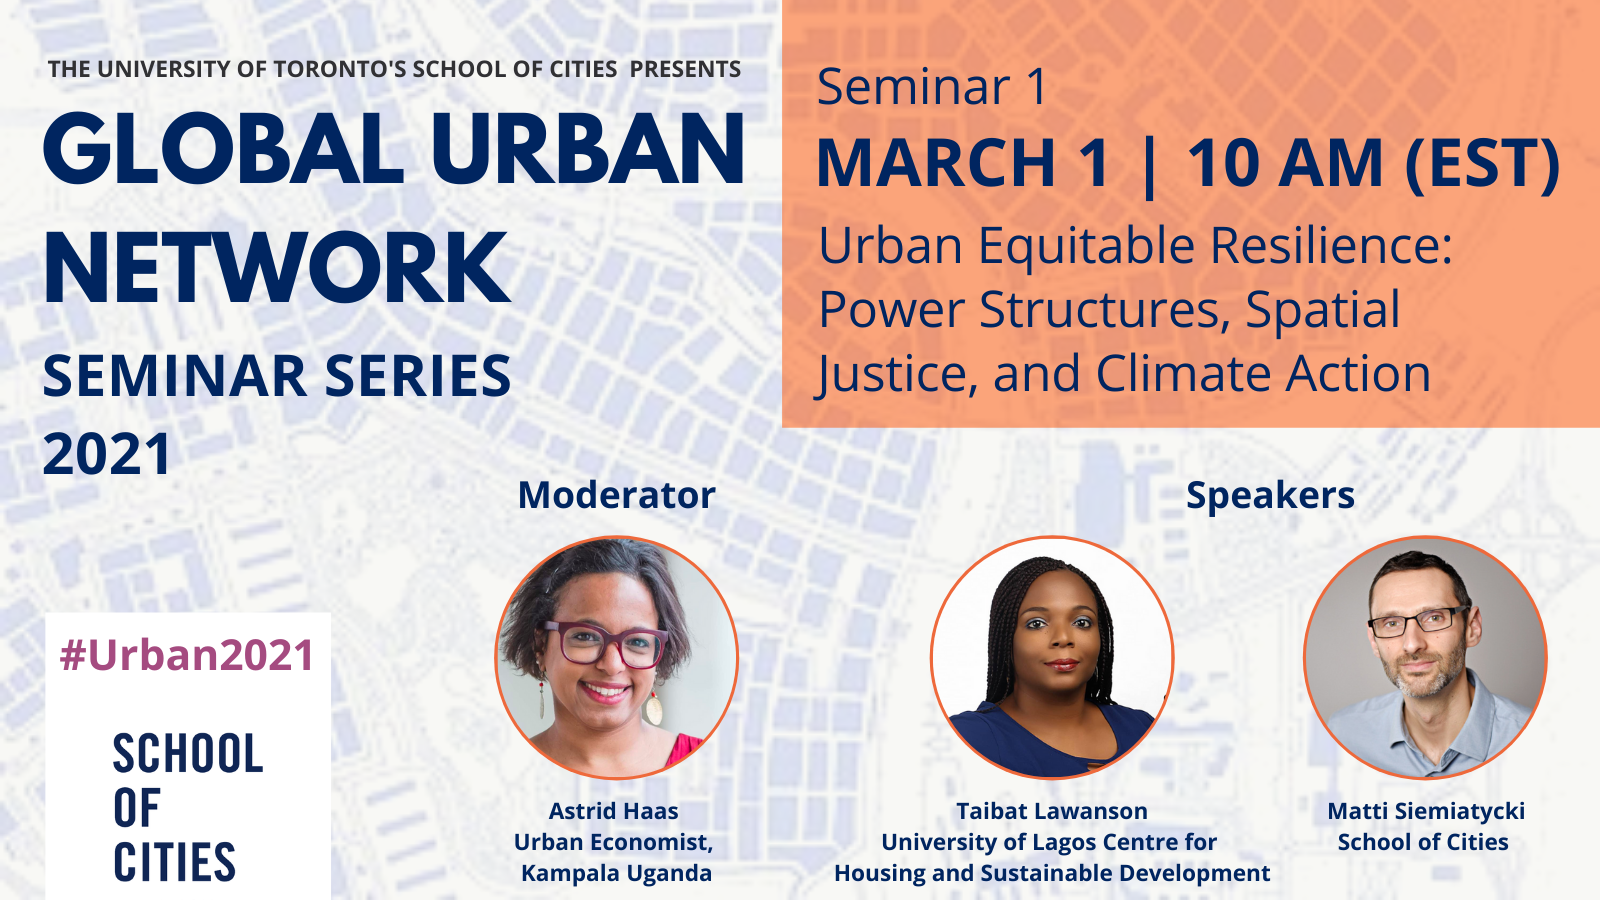 Global Urban Network Seminar Series 2021 Session 1: Urban Equitable Resilience: Power Structures, Spatial Justice, and Climate Action, to be held on March 1